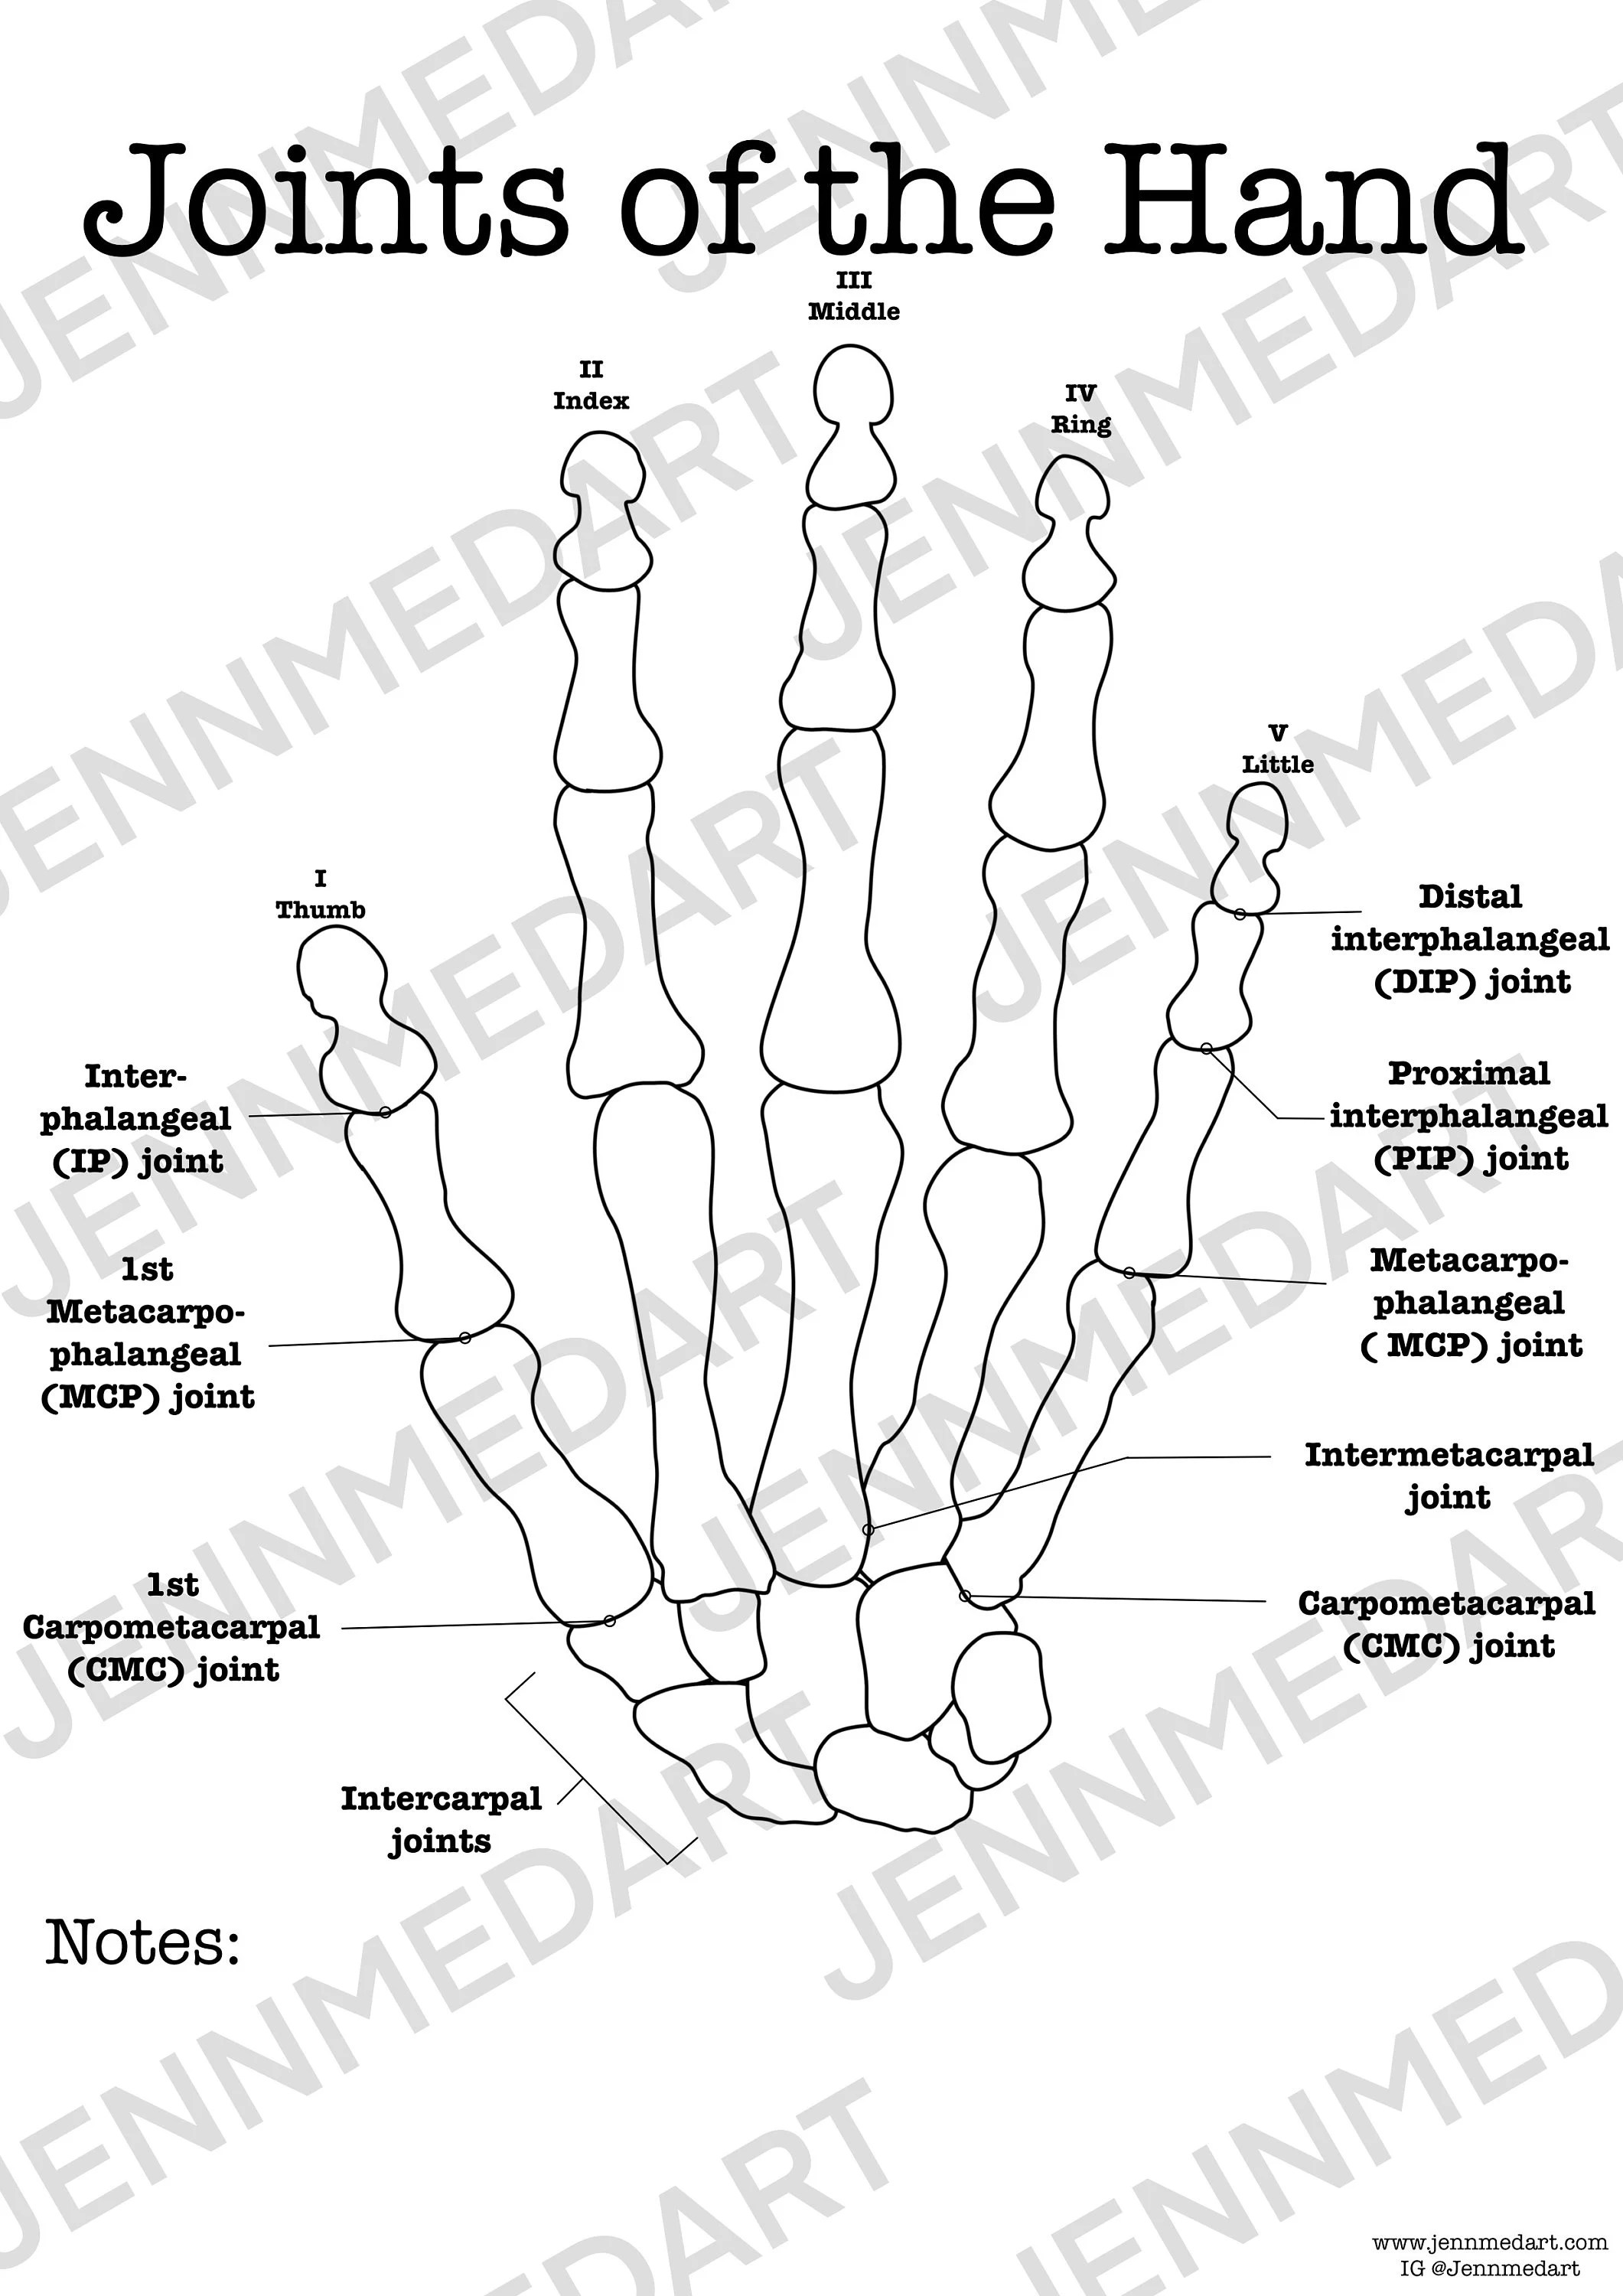 Joints Of The Hand Anatomy Worksheet 3 In 1 Set A Labeled